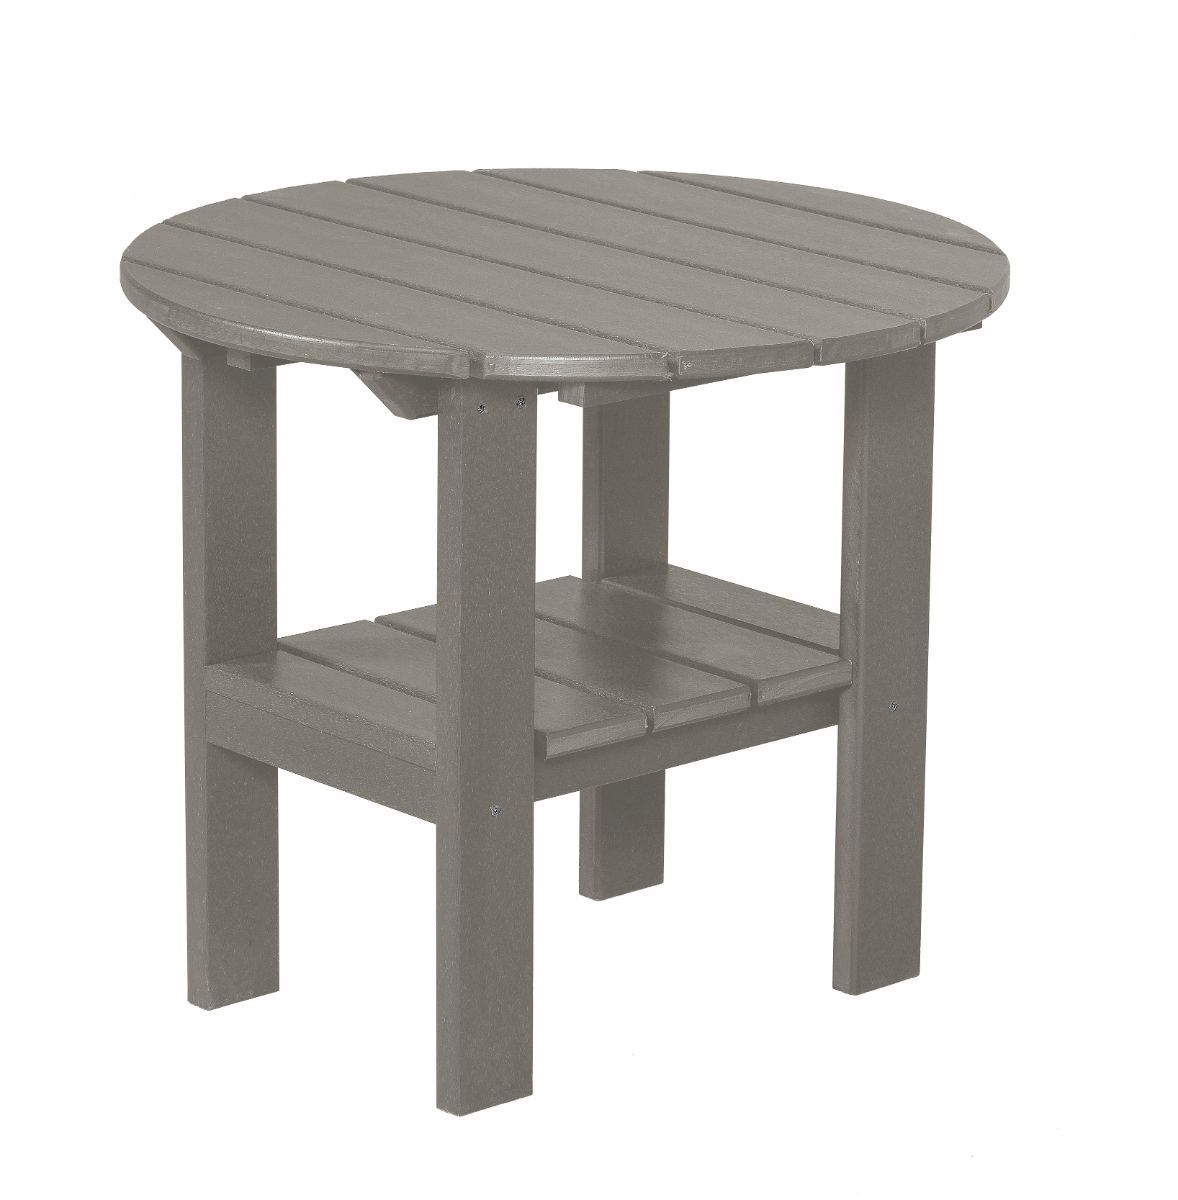 Light Gray Odessa Round Outdoor Side Table